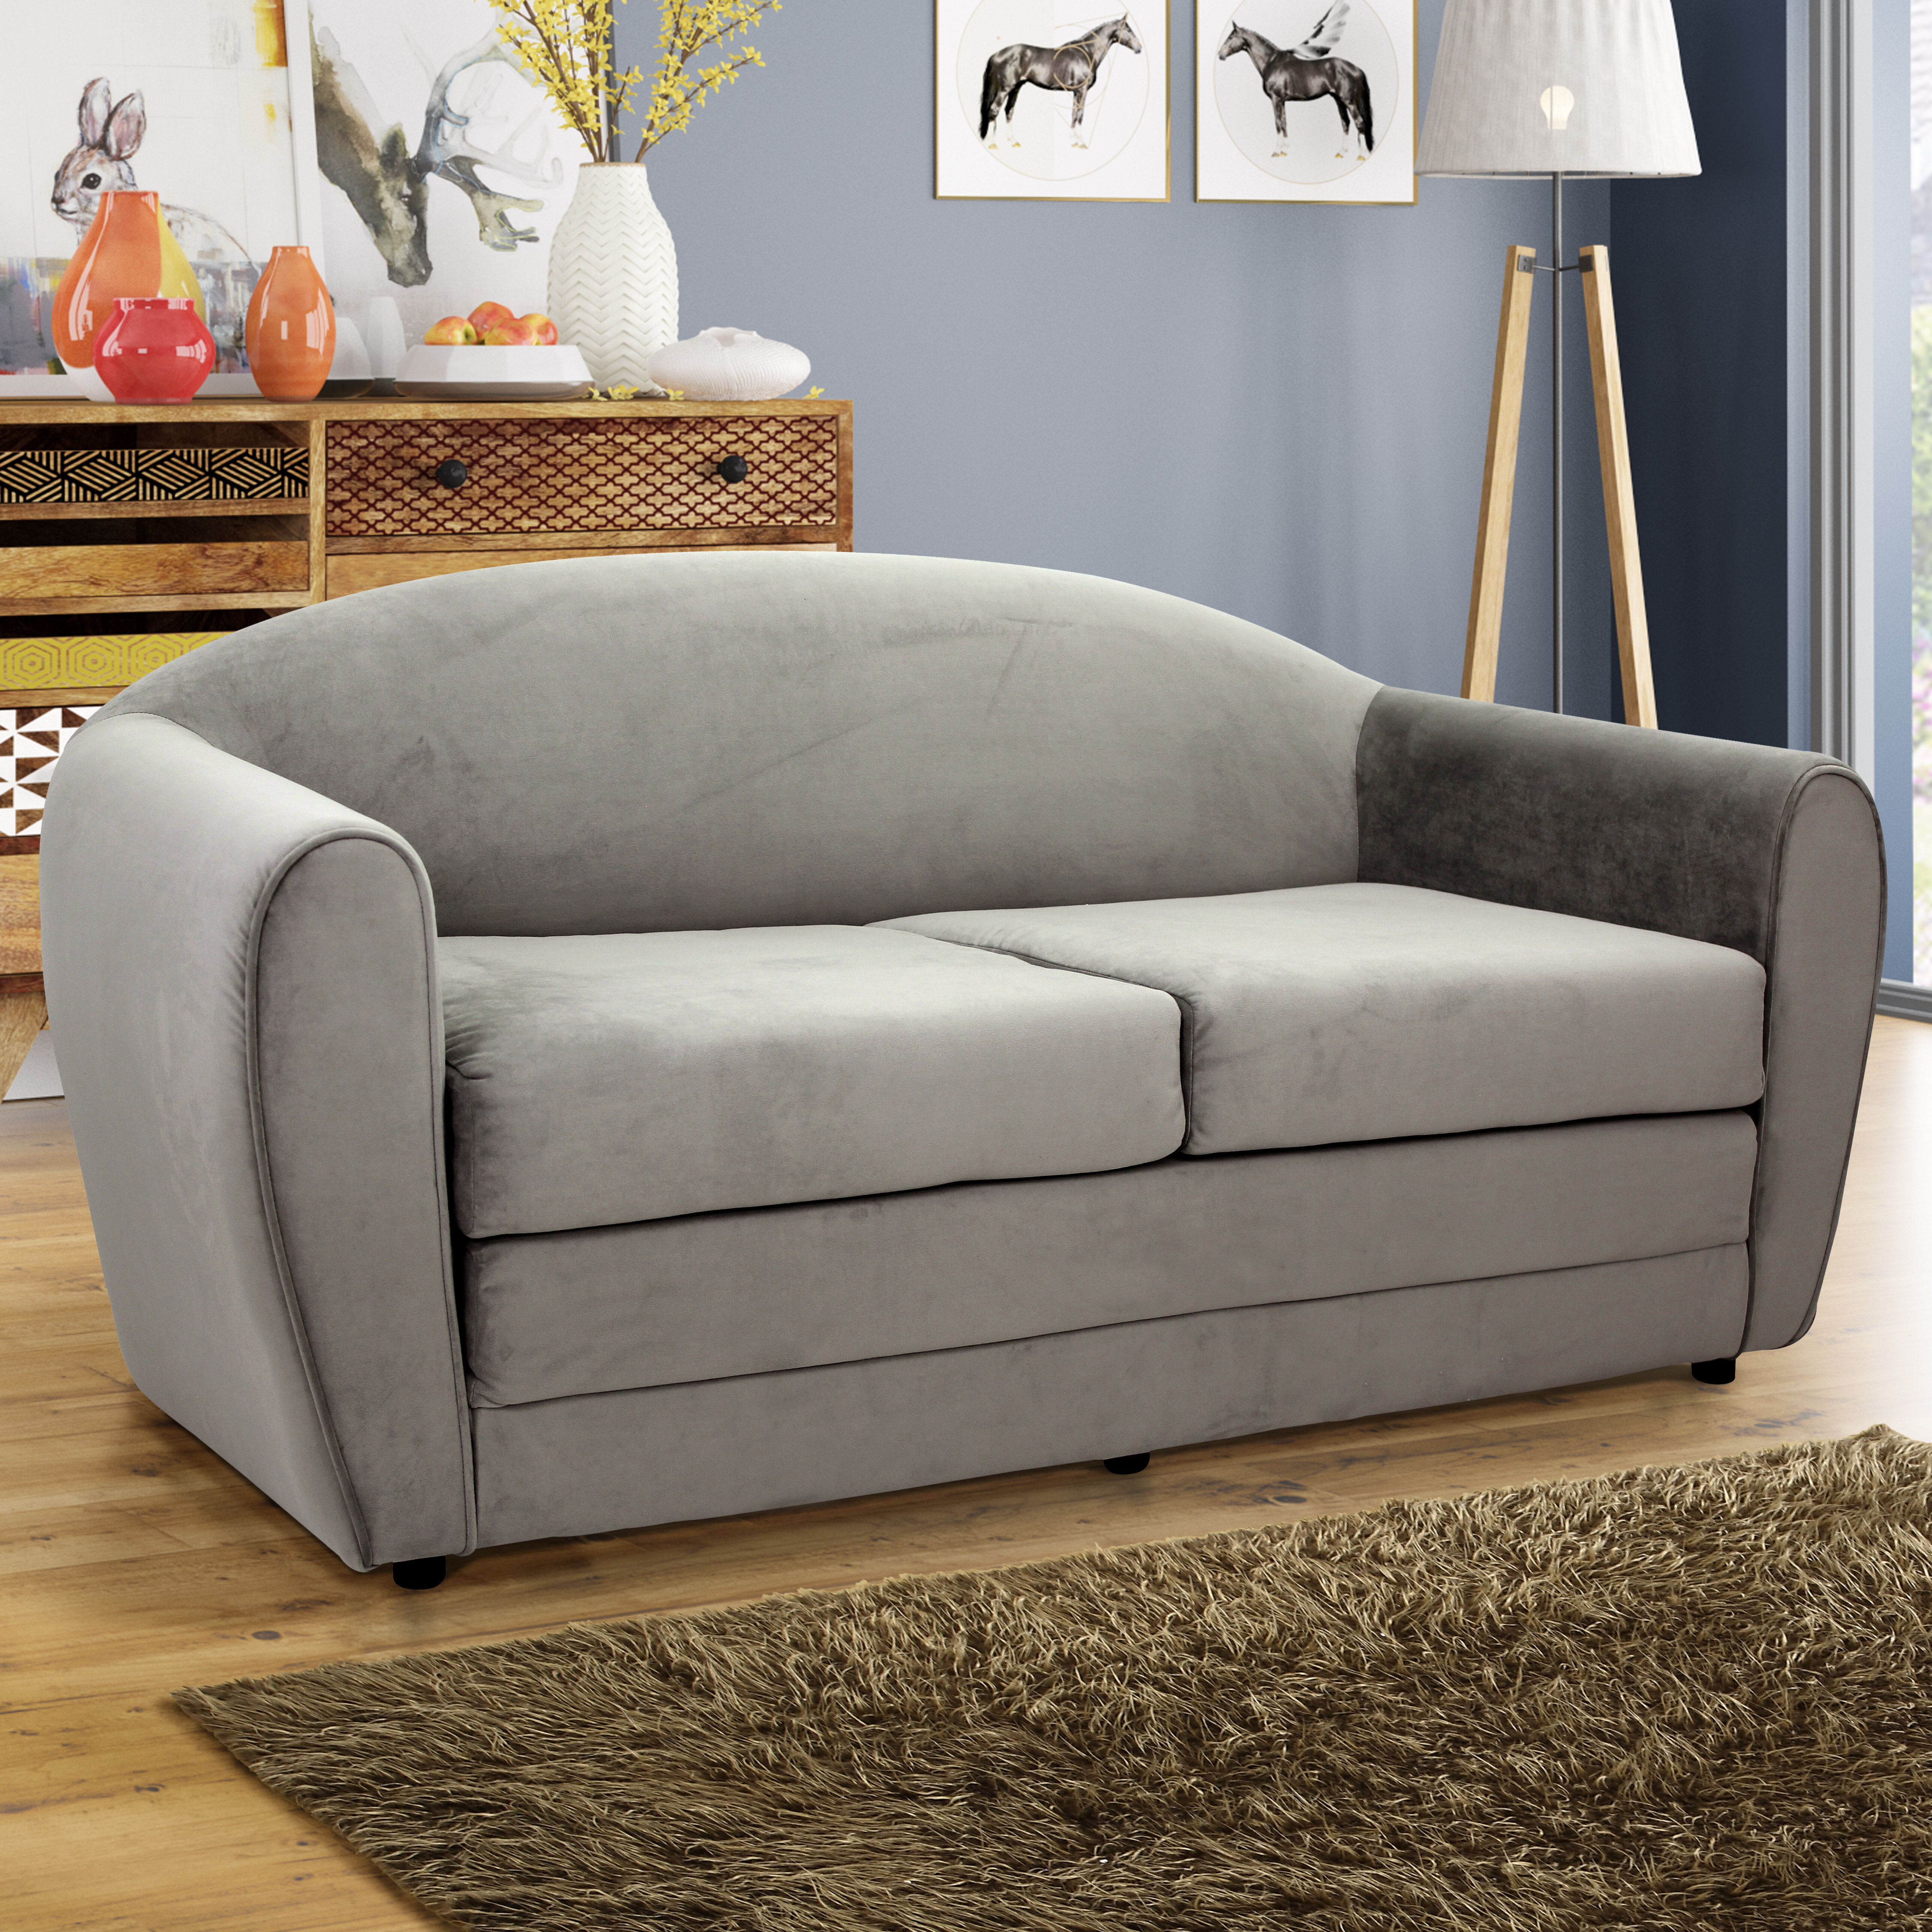 small sofa for couches insider loveseat teen epic remodel ideas bedrooms room about